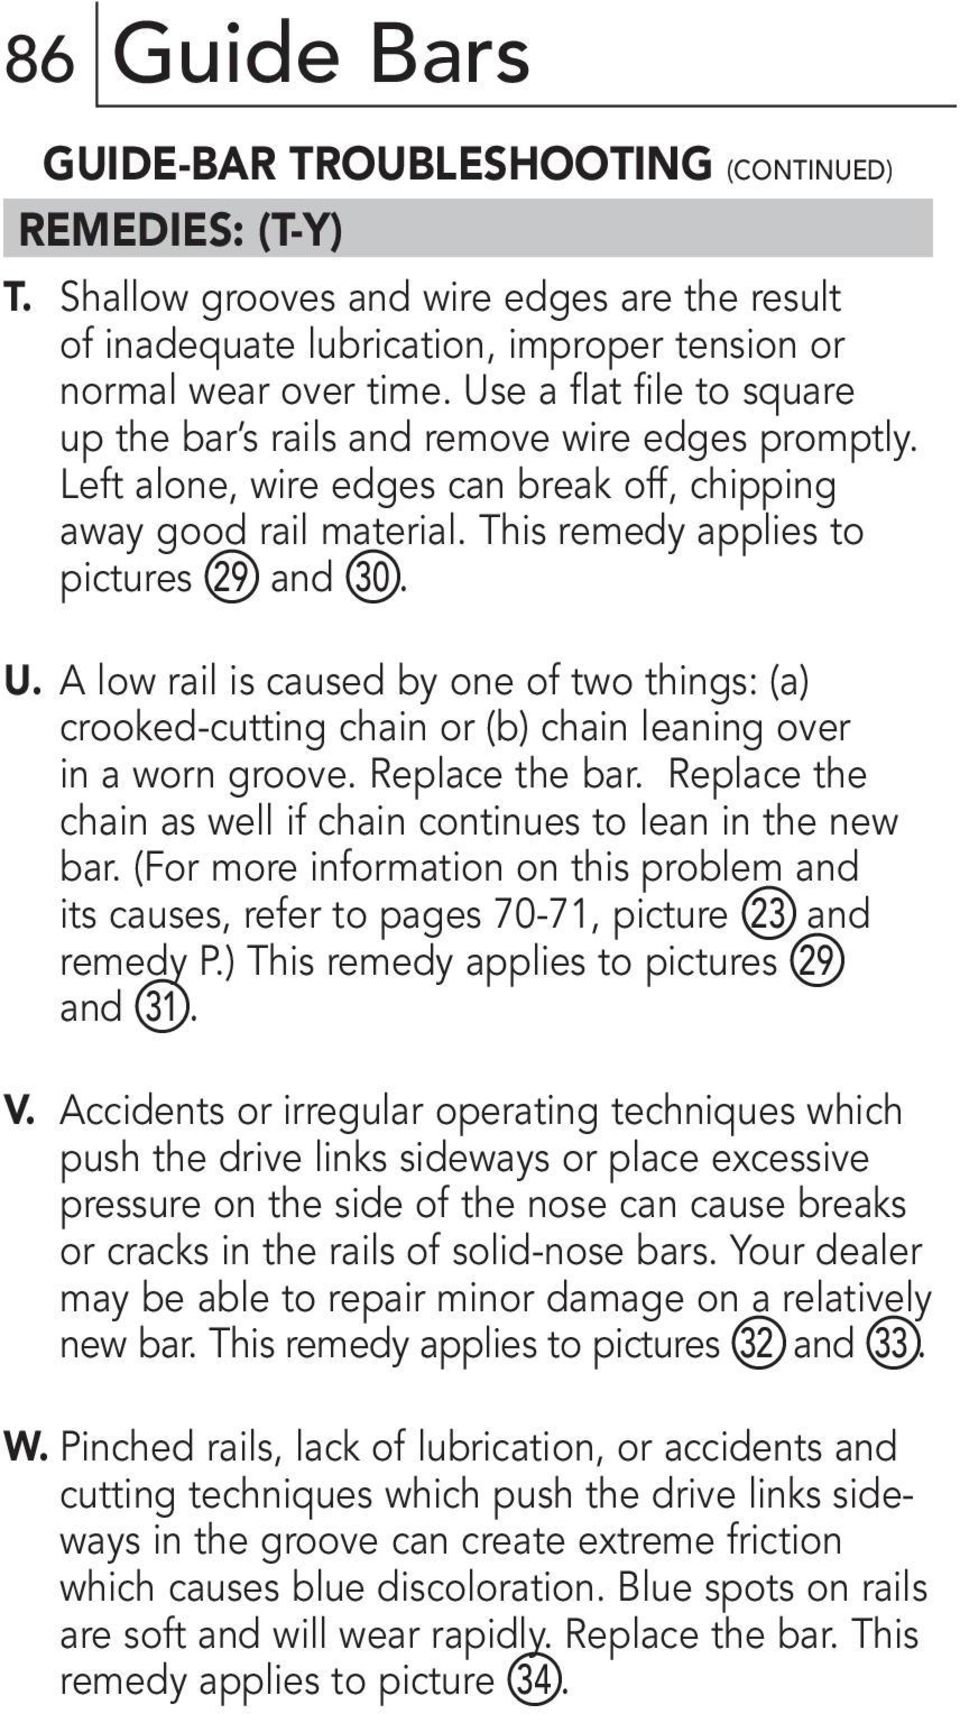 A low rail is caused by one of two things: (a) crooked-cutting chain or (b) chain leaning over in a worn groove. Replace the bar. Replace the chain as well if chain continues to lean in the new bar.